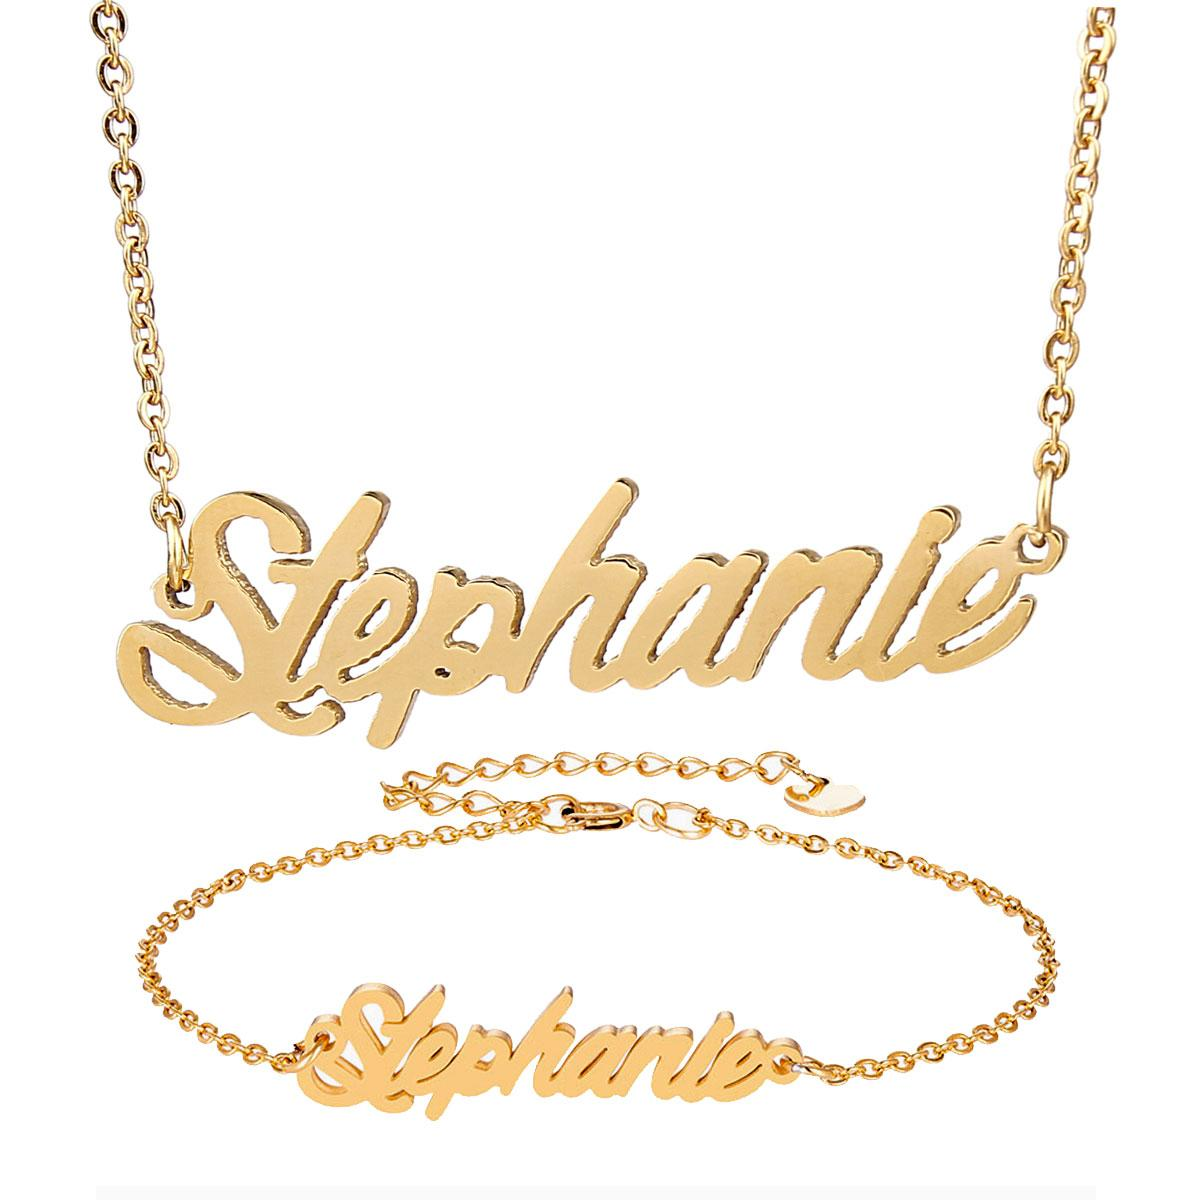 bf9eb96b8fa1d Statement Script Cut Nameplate Necklace Name Stephanie Gold Chain for Women  Stainless Steel Name Necklace Bracelet Set Pendant Gift